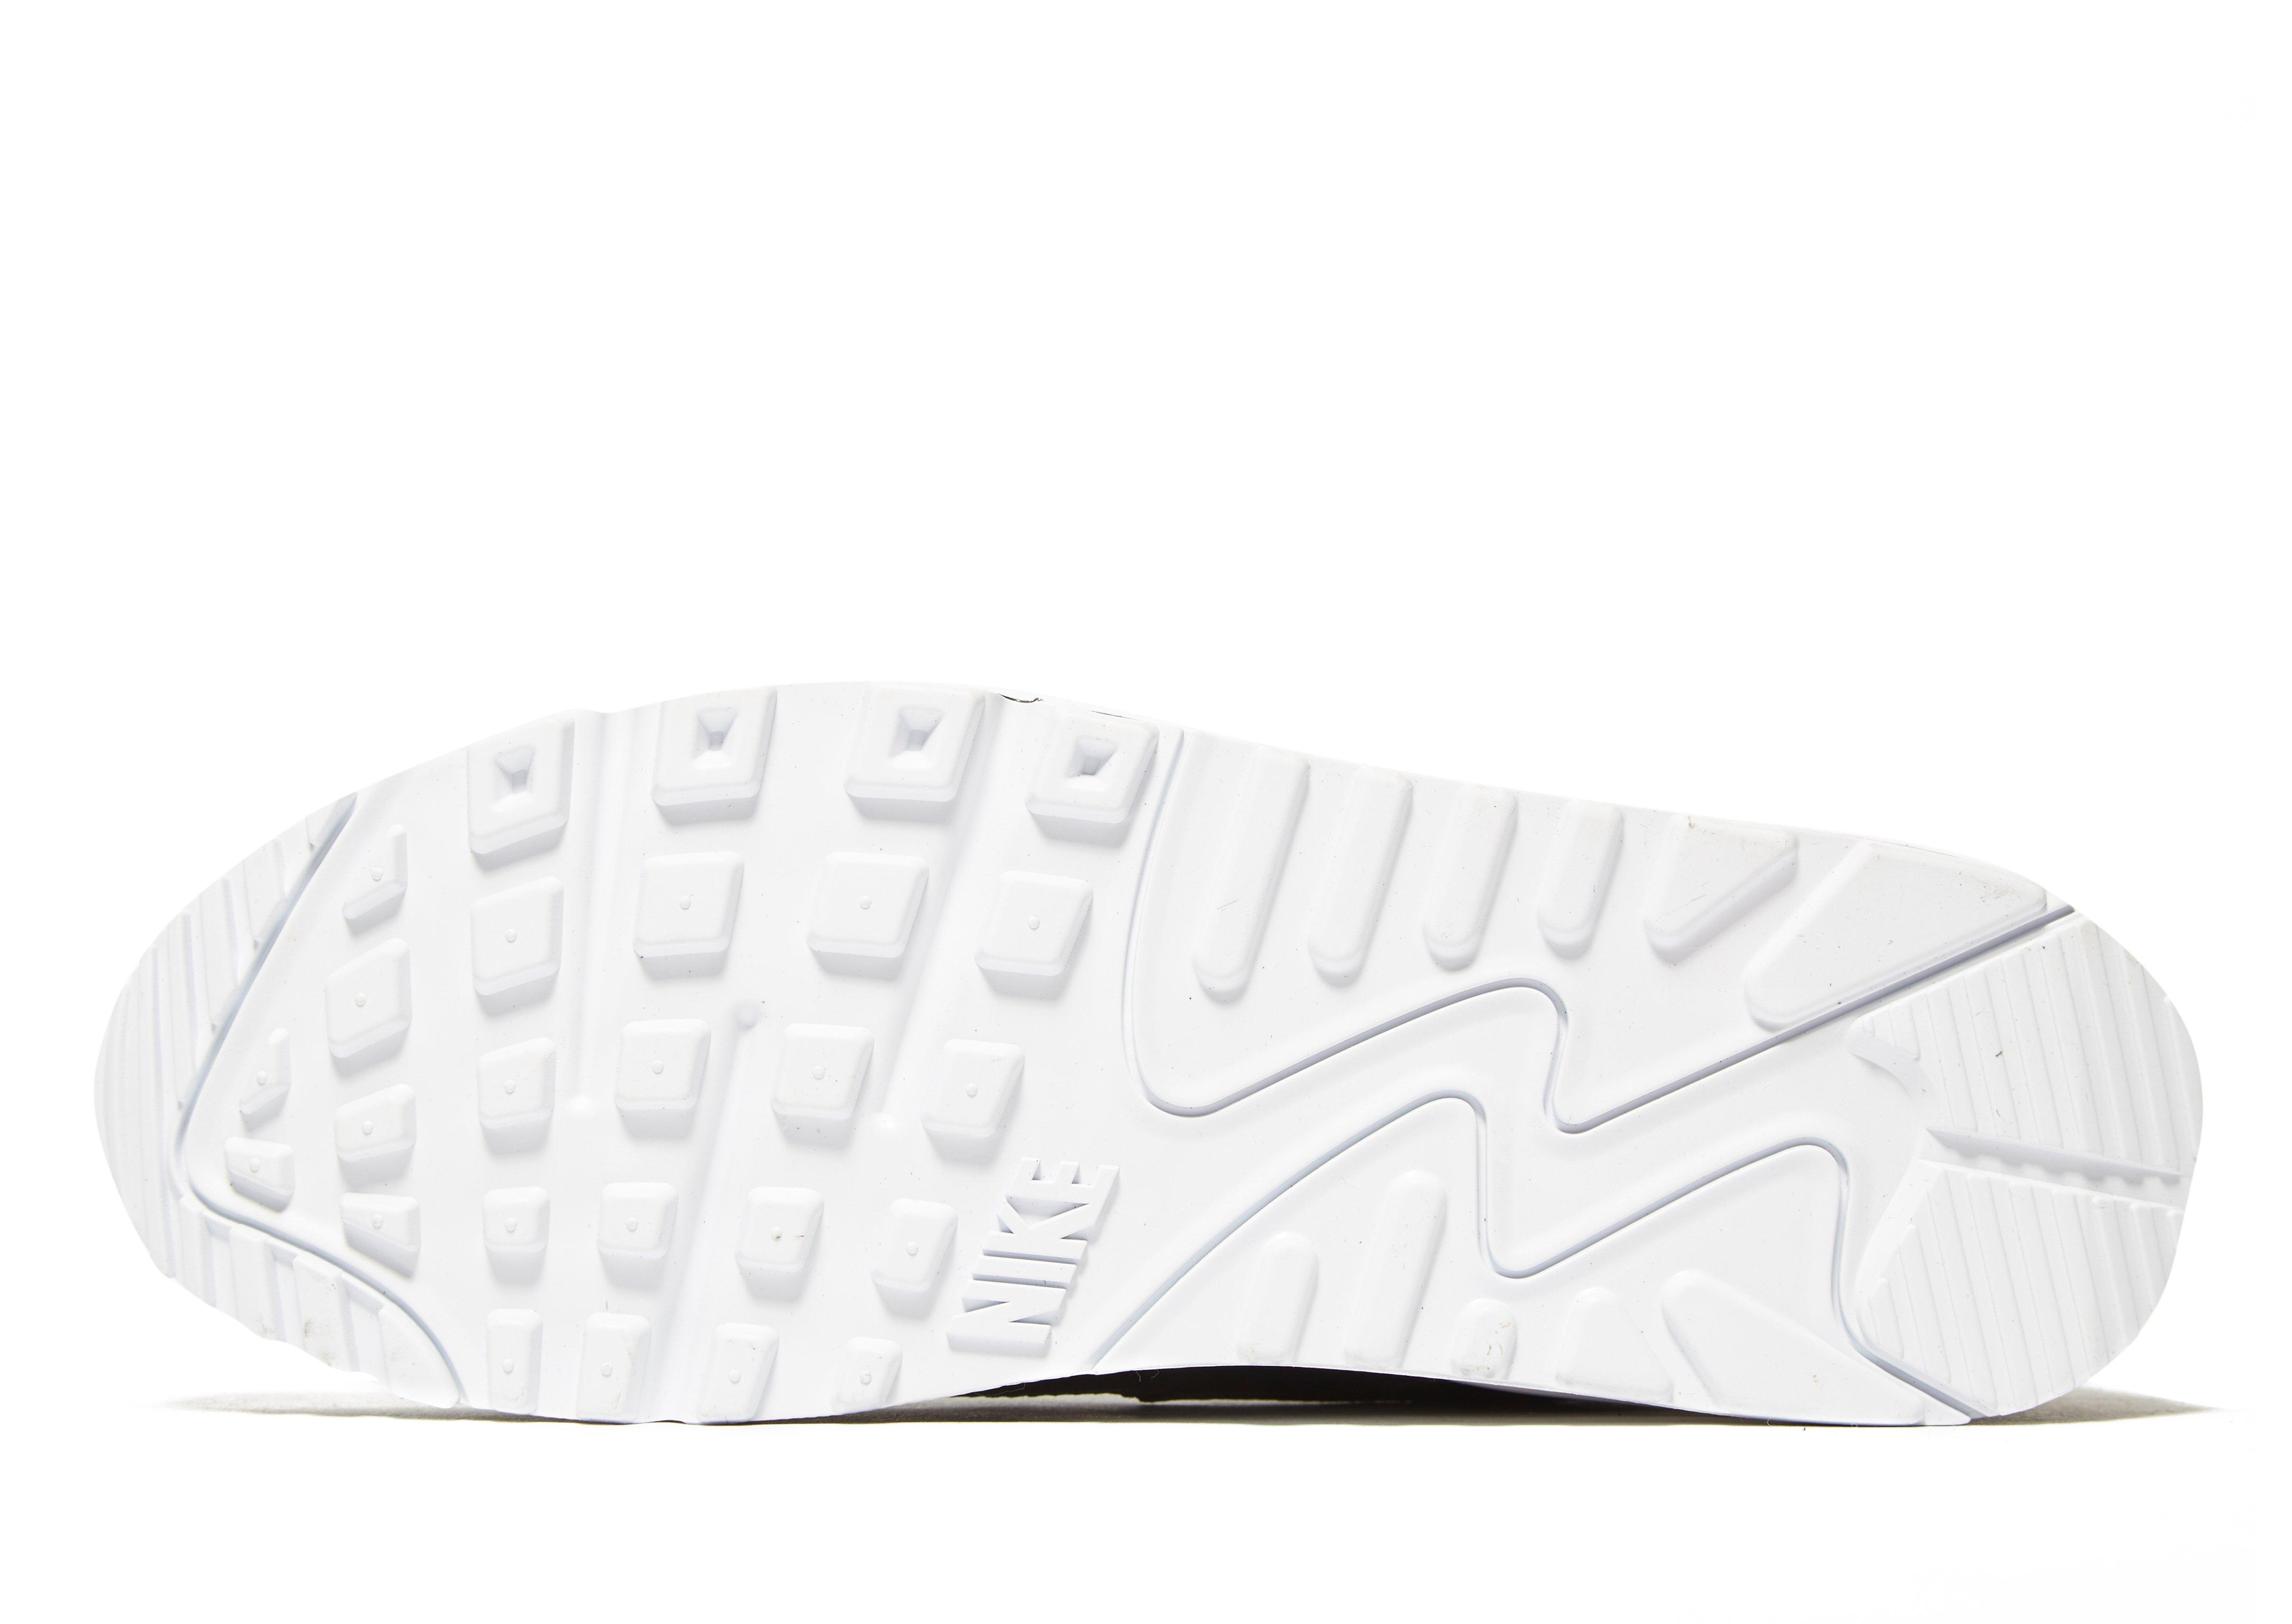 0ee0062b7d6c The entire look is very graceful and appreciable. Nike free rn 2018 running  shoe with dynamic stretch to free your stride. When you show women shoes